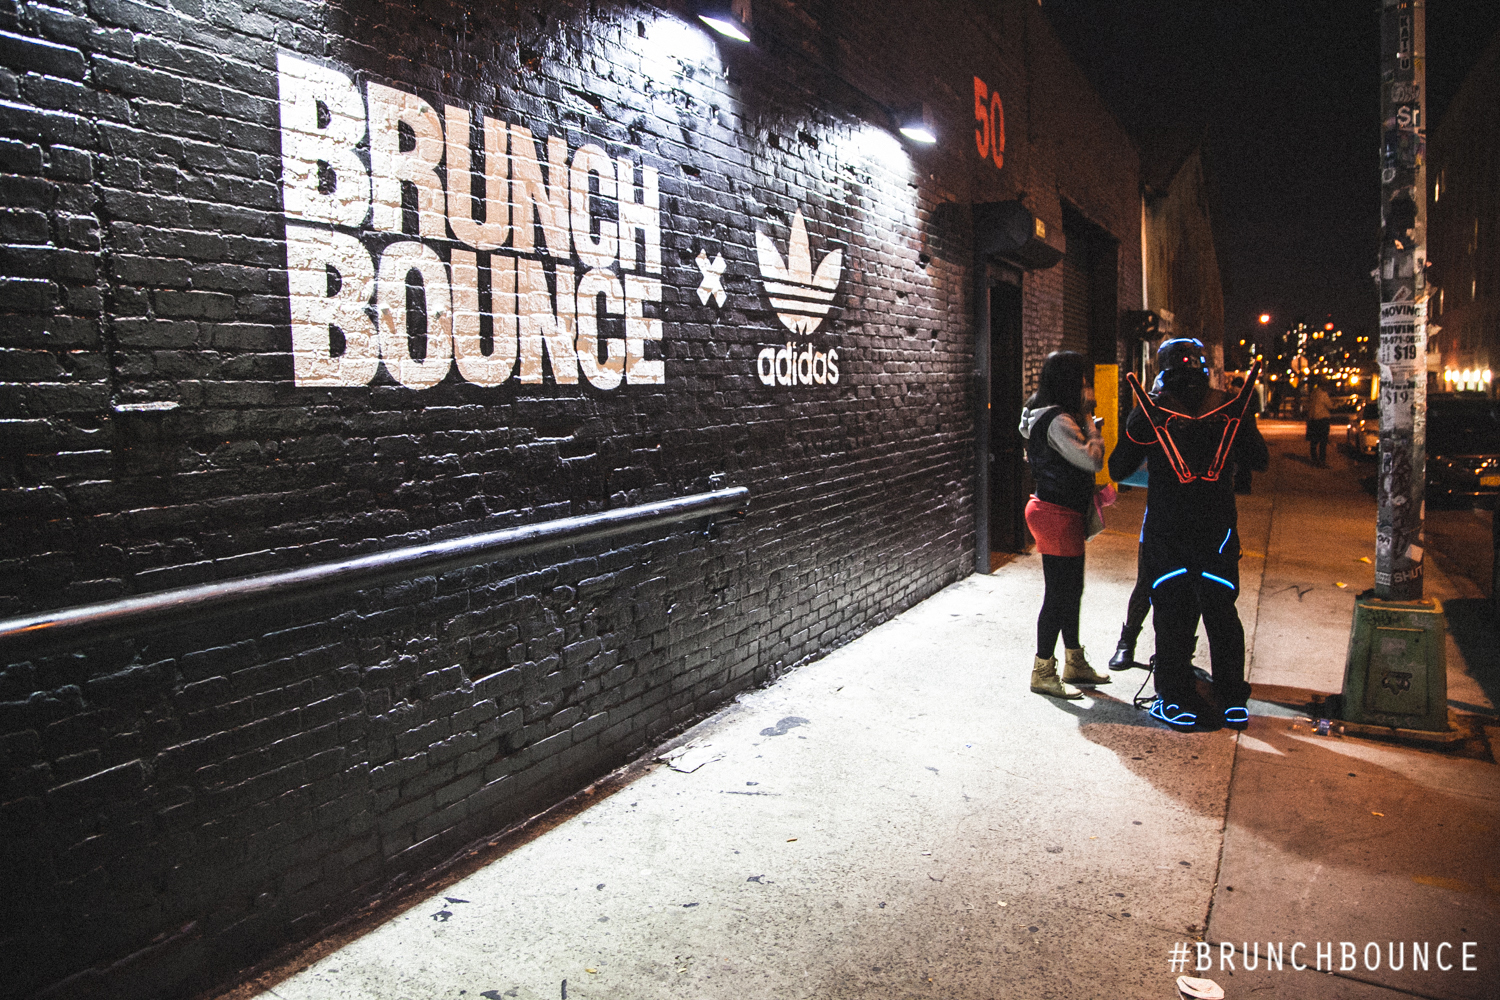 brunch-bounce-x-adidas-originals-halloween-103115_22729182466_o.jpg